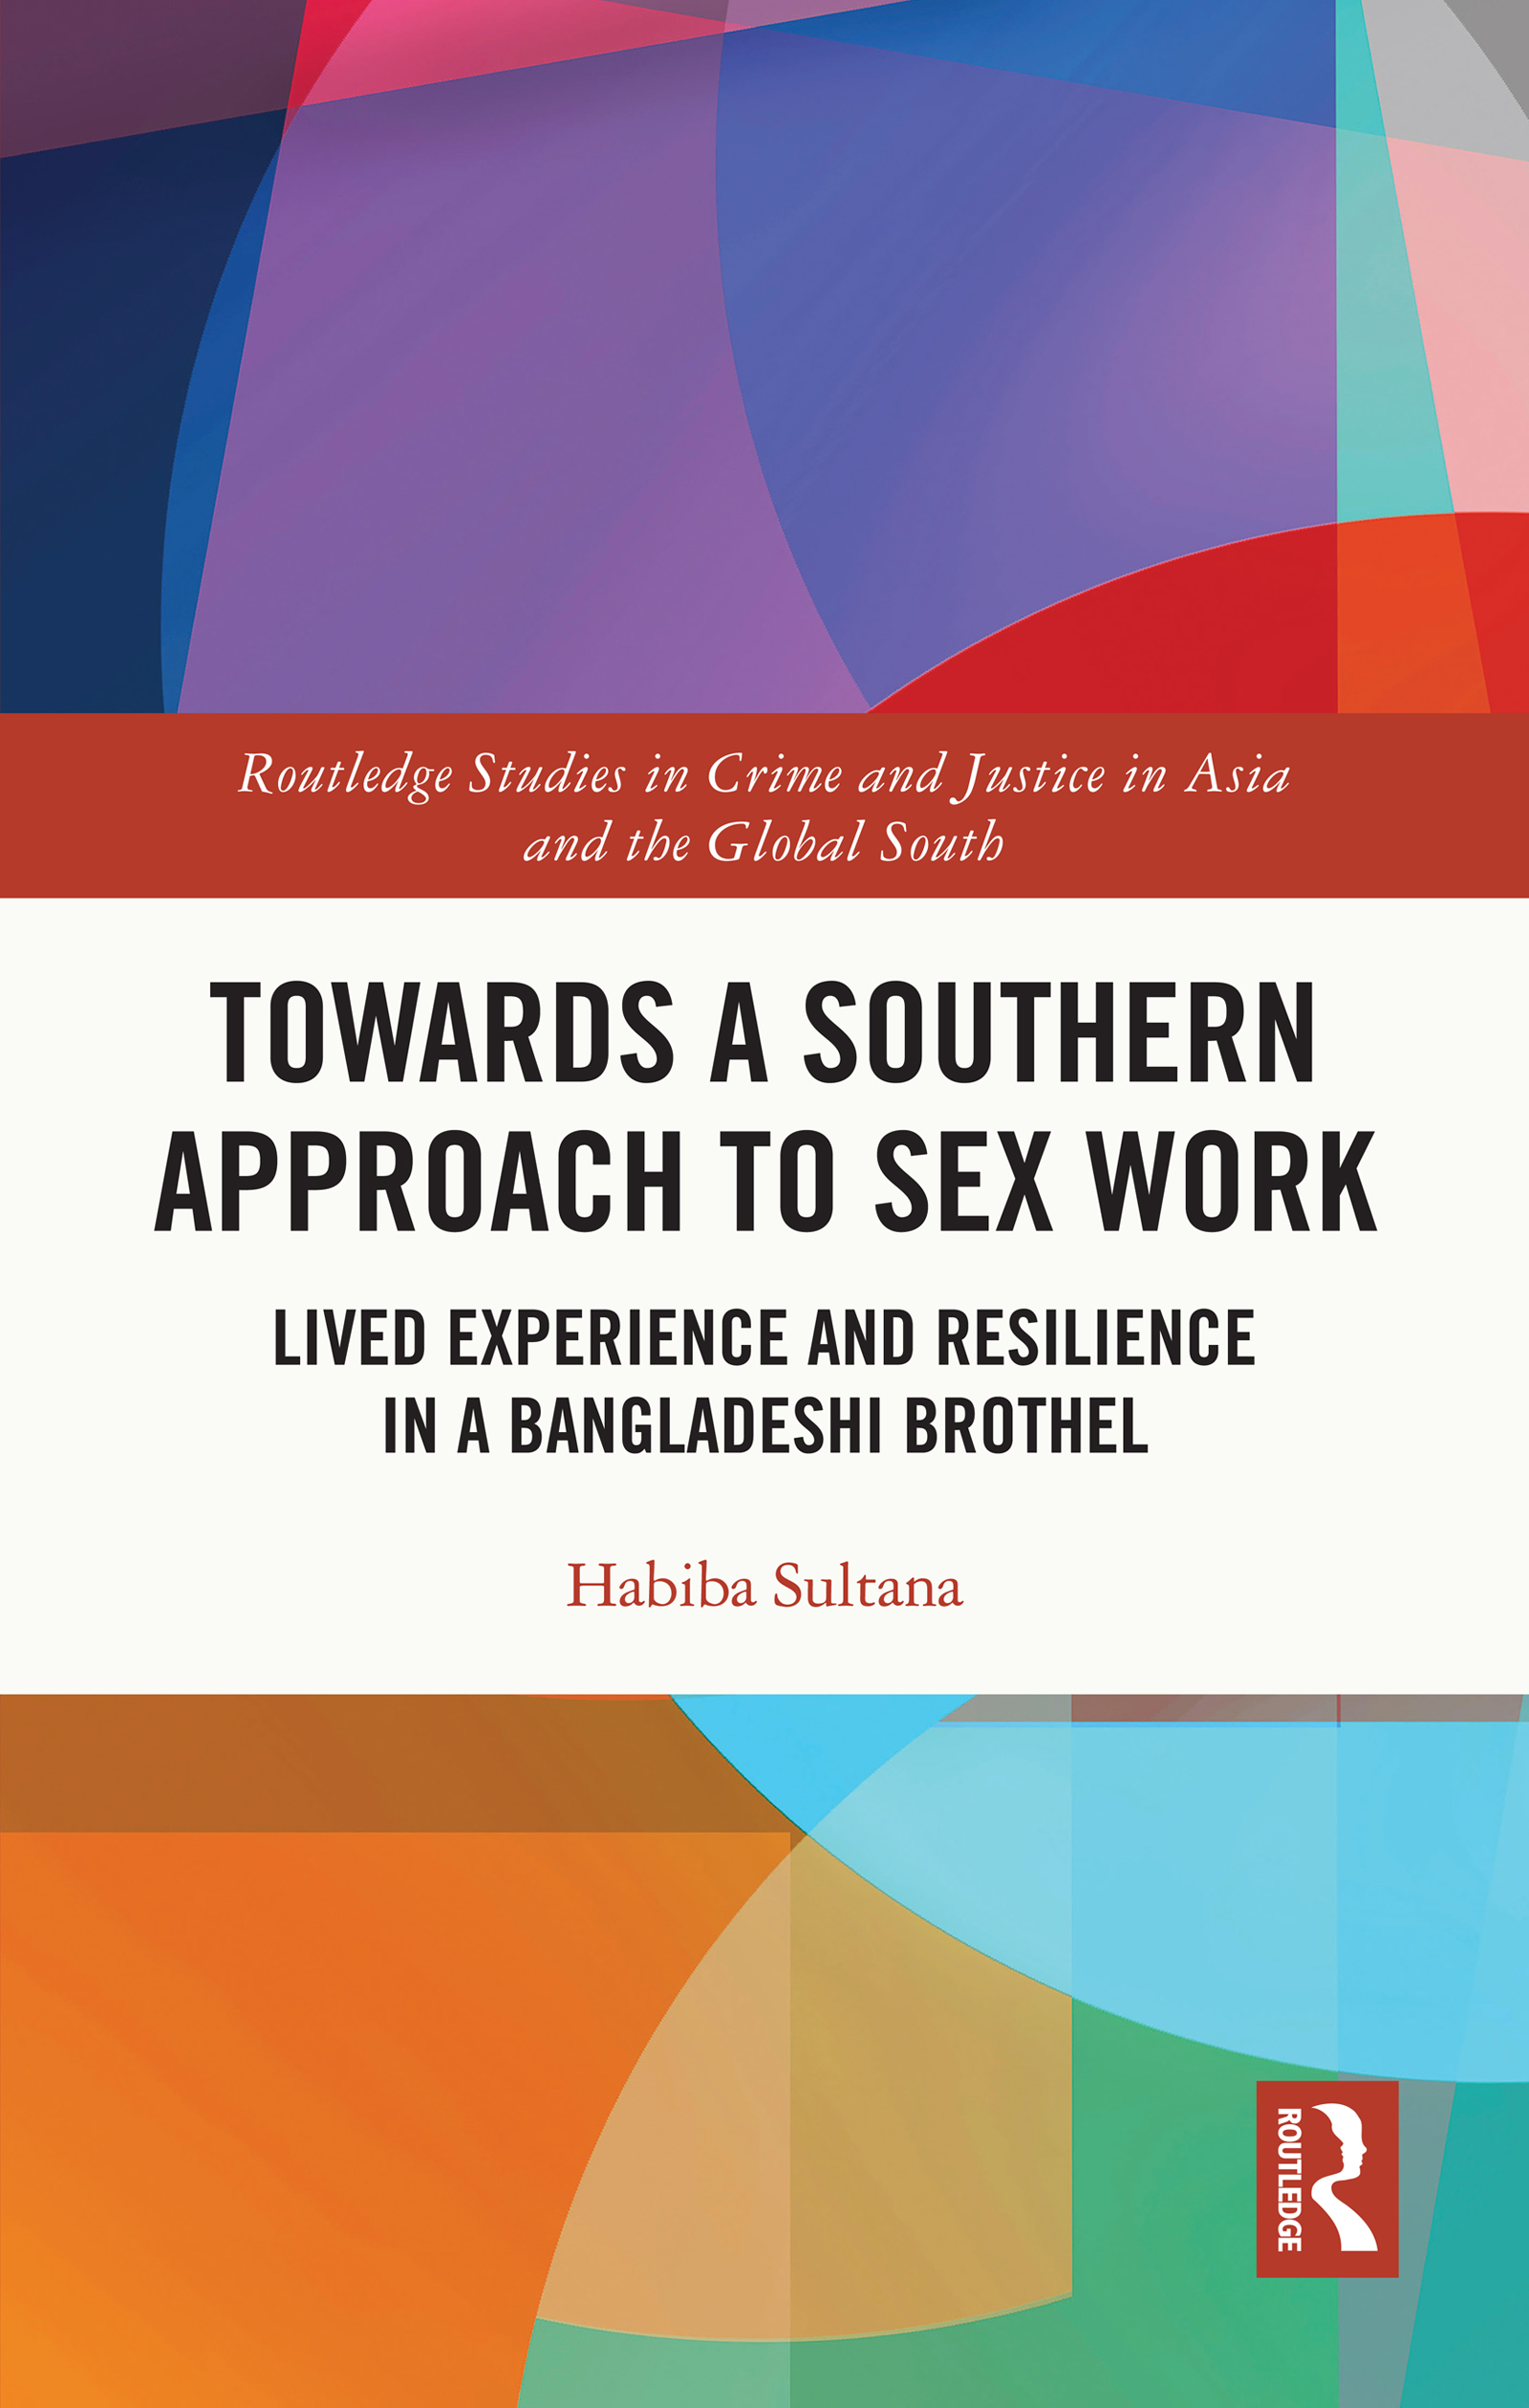 Towards a Southern Approach to Sex Work